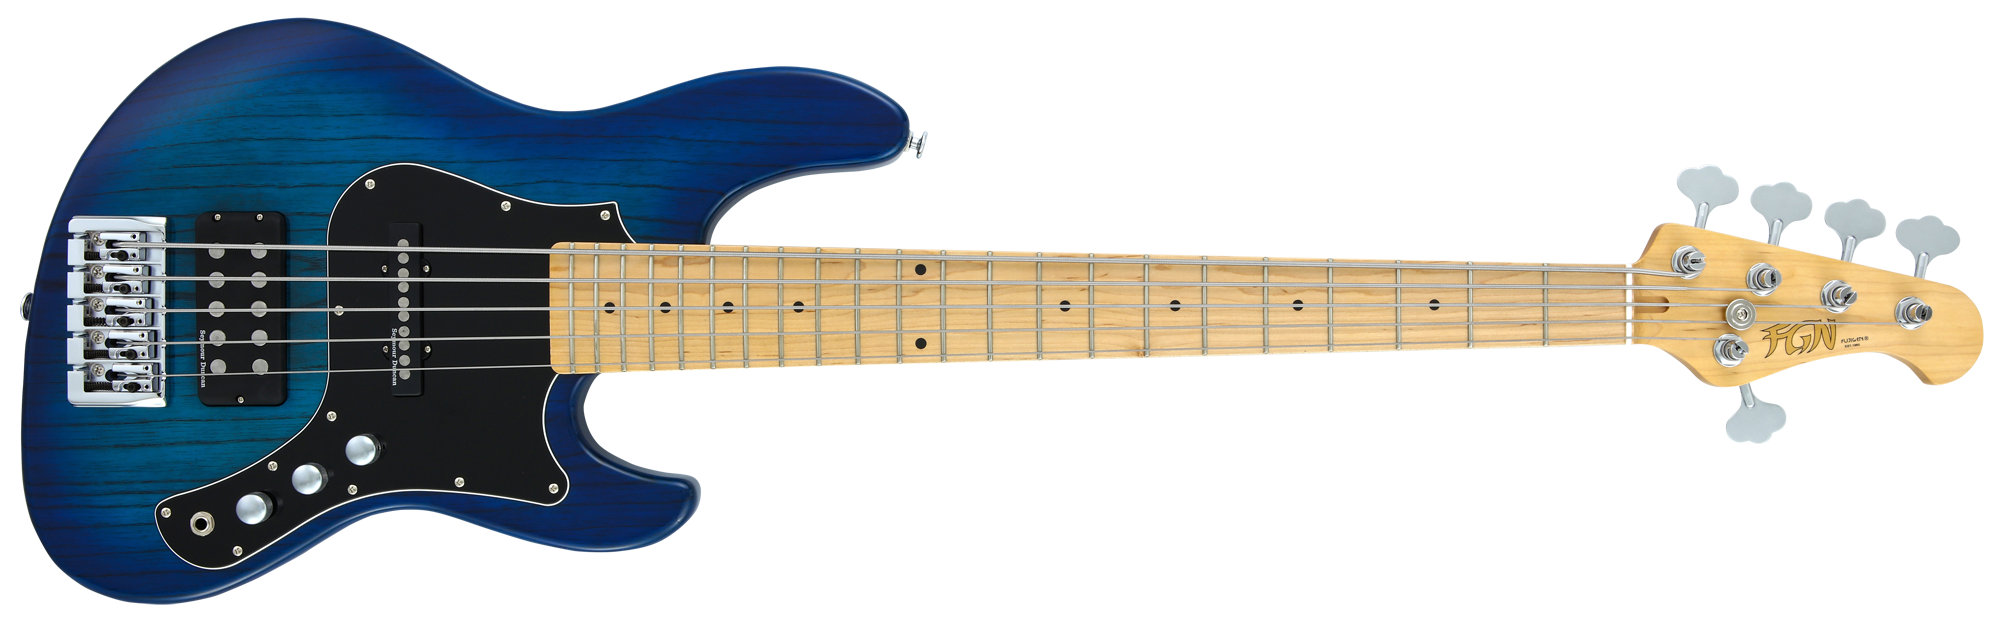 FGN Bassgitarre, J-Standard Mighty Jazz, See-through Blue Burst, 5-Sai